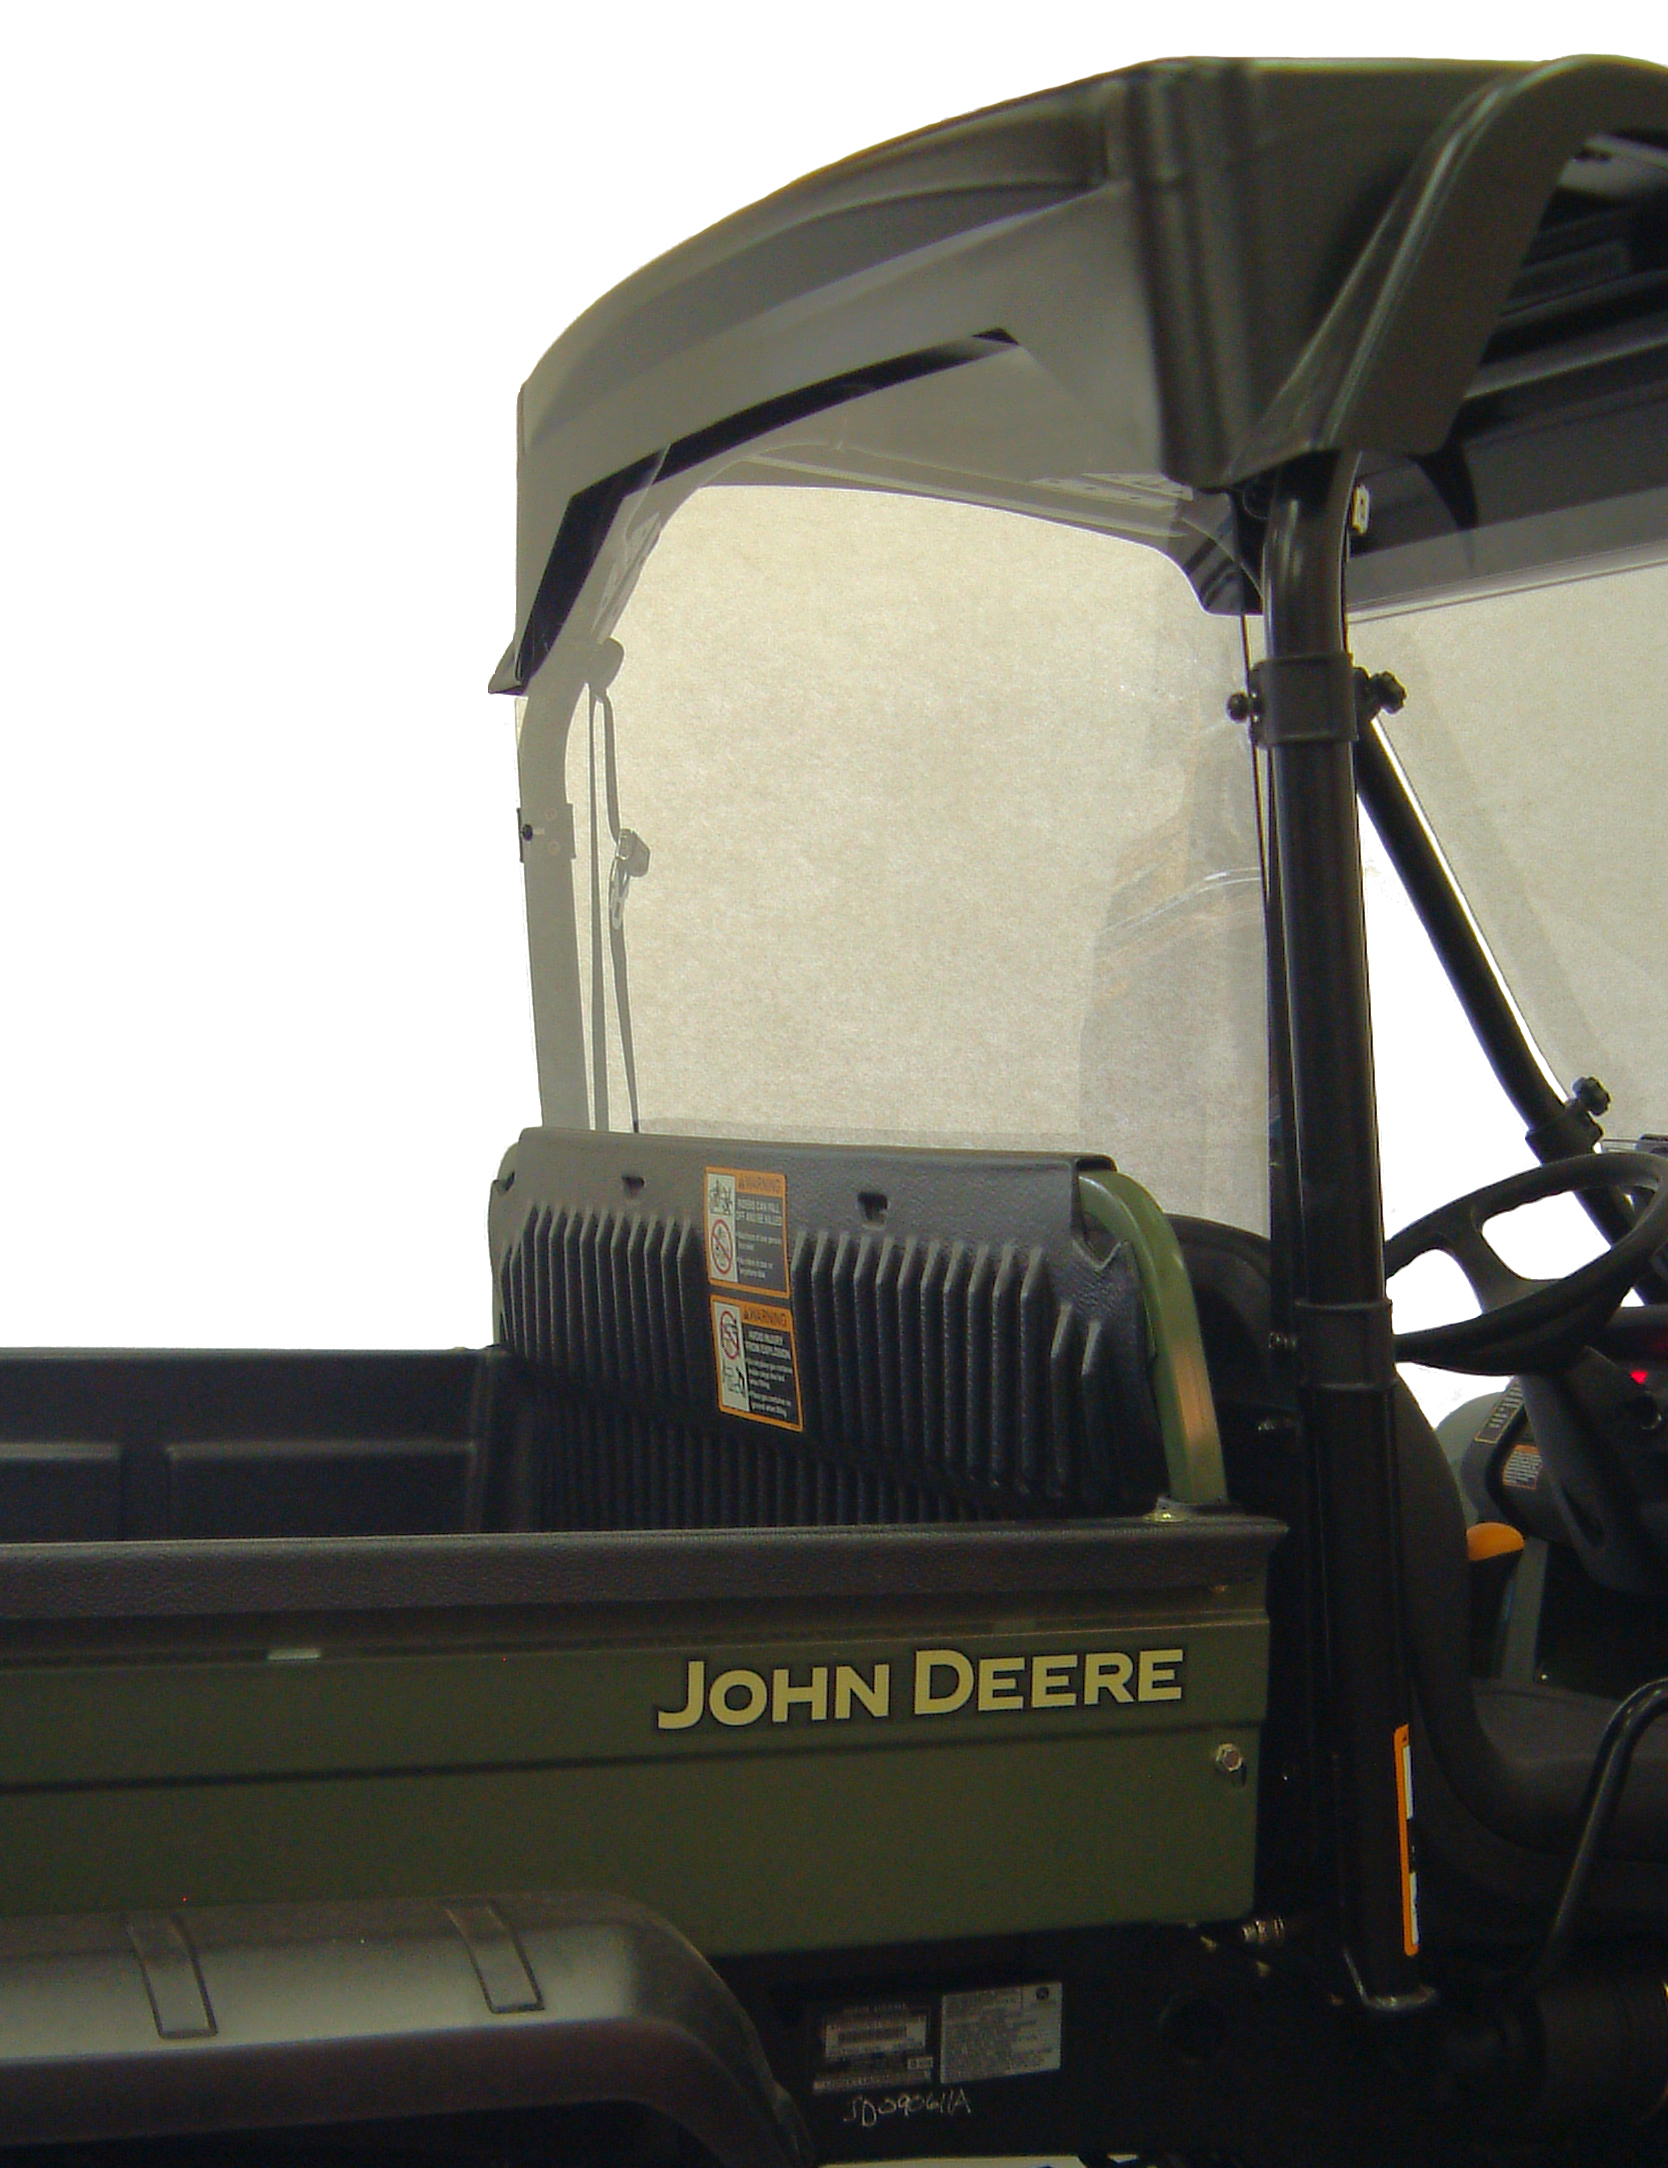 john deere gator 620i accessories tattoo design bild. Black Bedroom Furniture Sets. Home Design Ideas